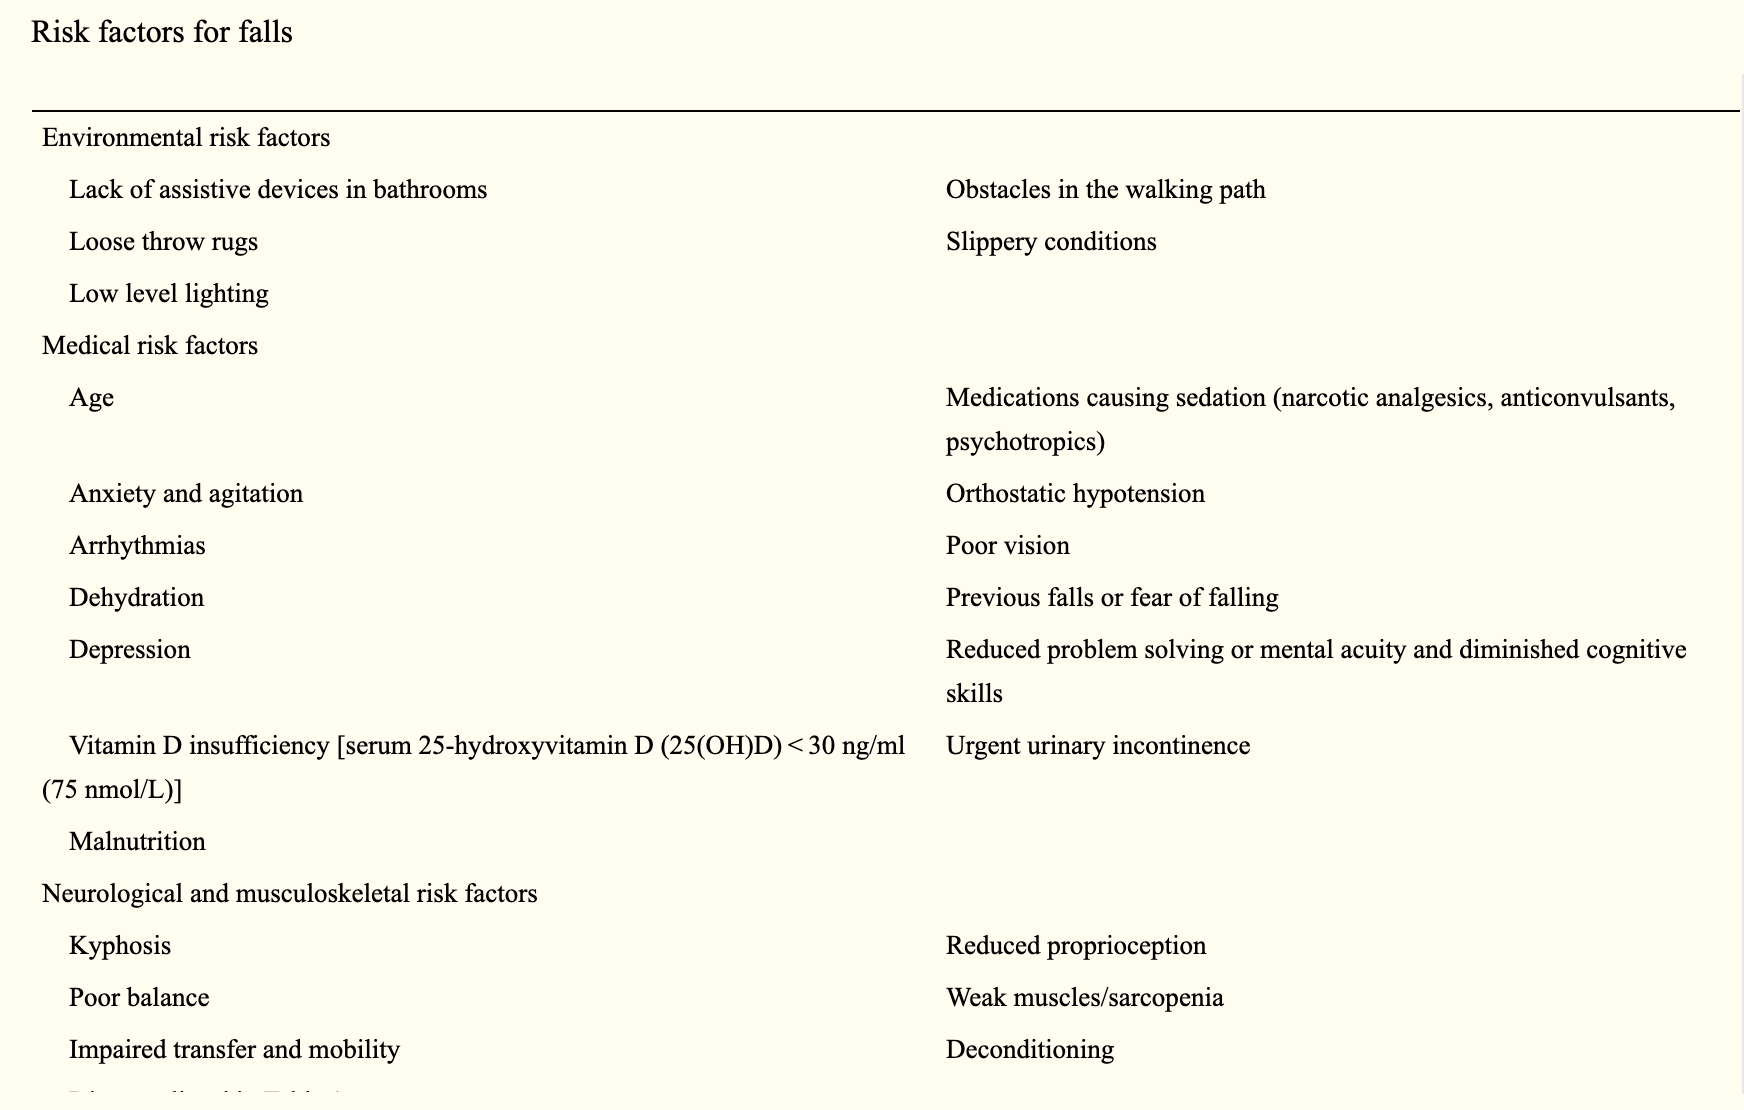 Figure 1 . Risk factors for falls. Adopted from Cosman (2014) [1]